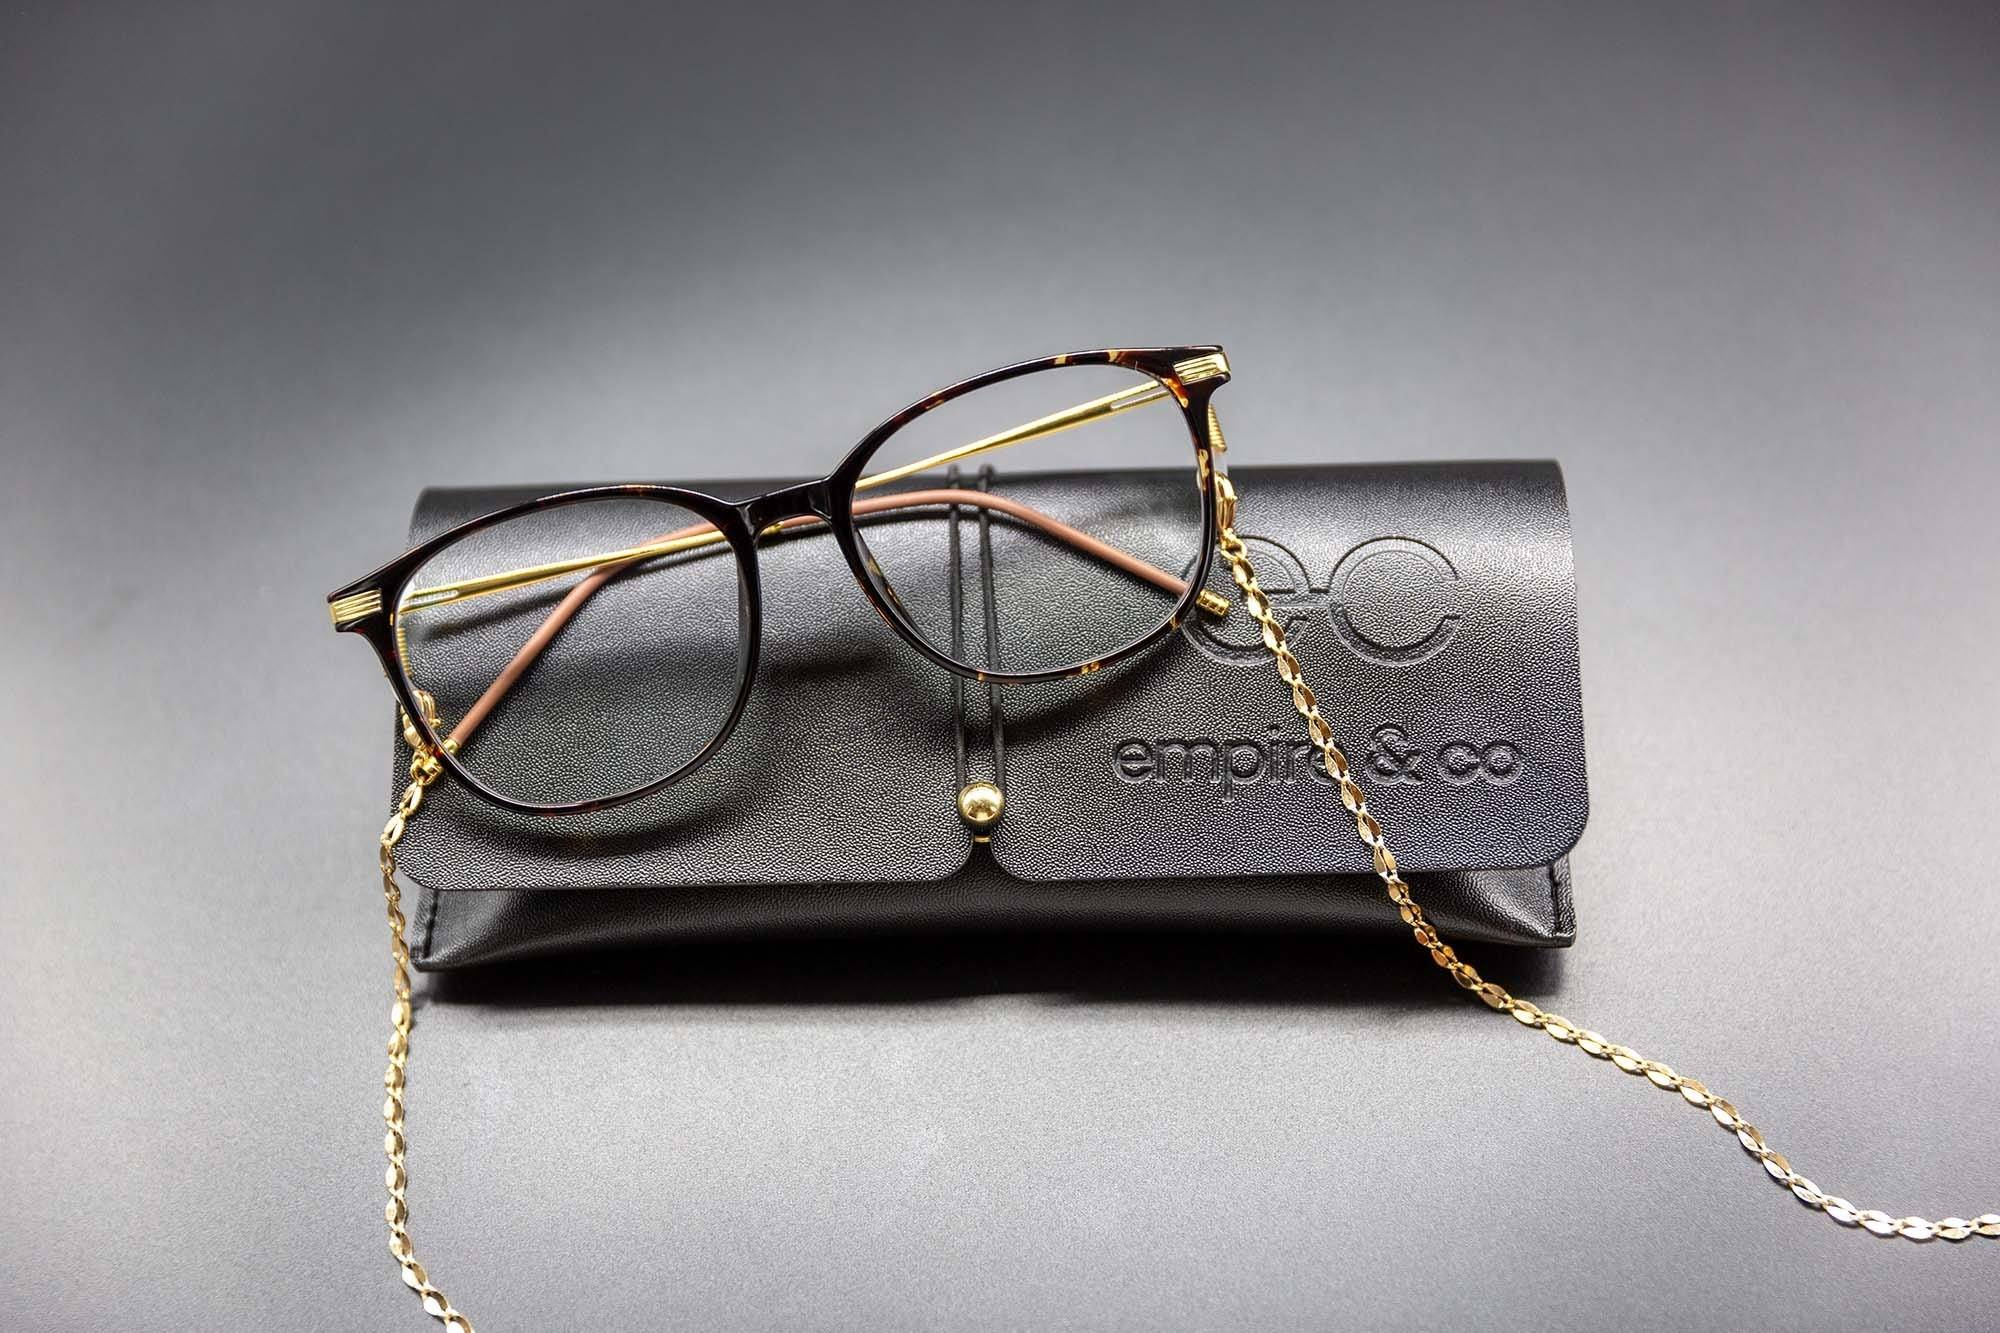 Glasses Chain Accessories Empire&Co Gold